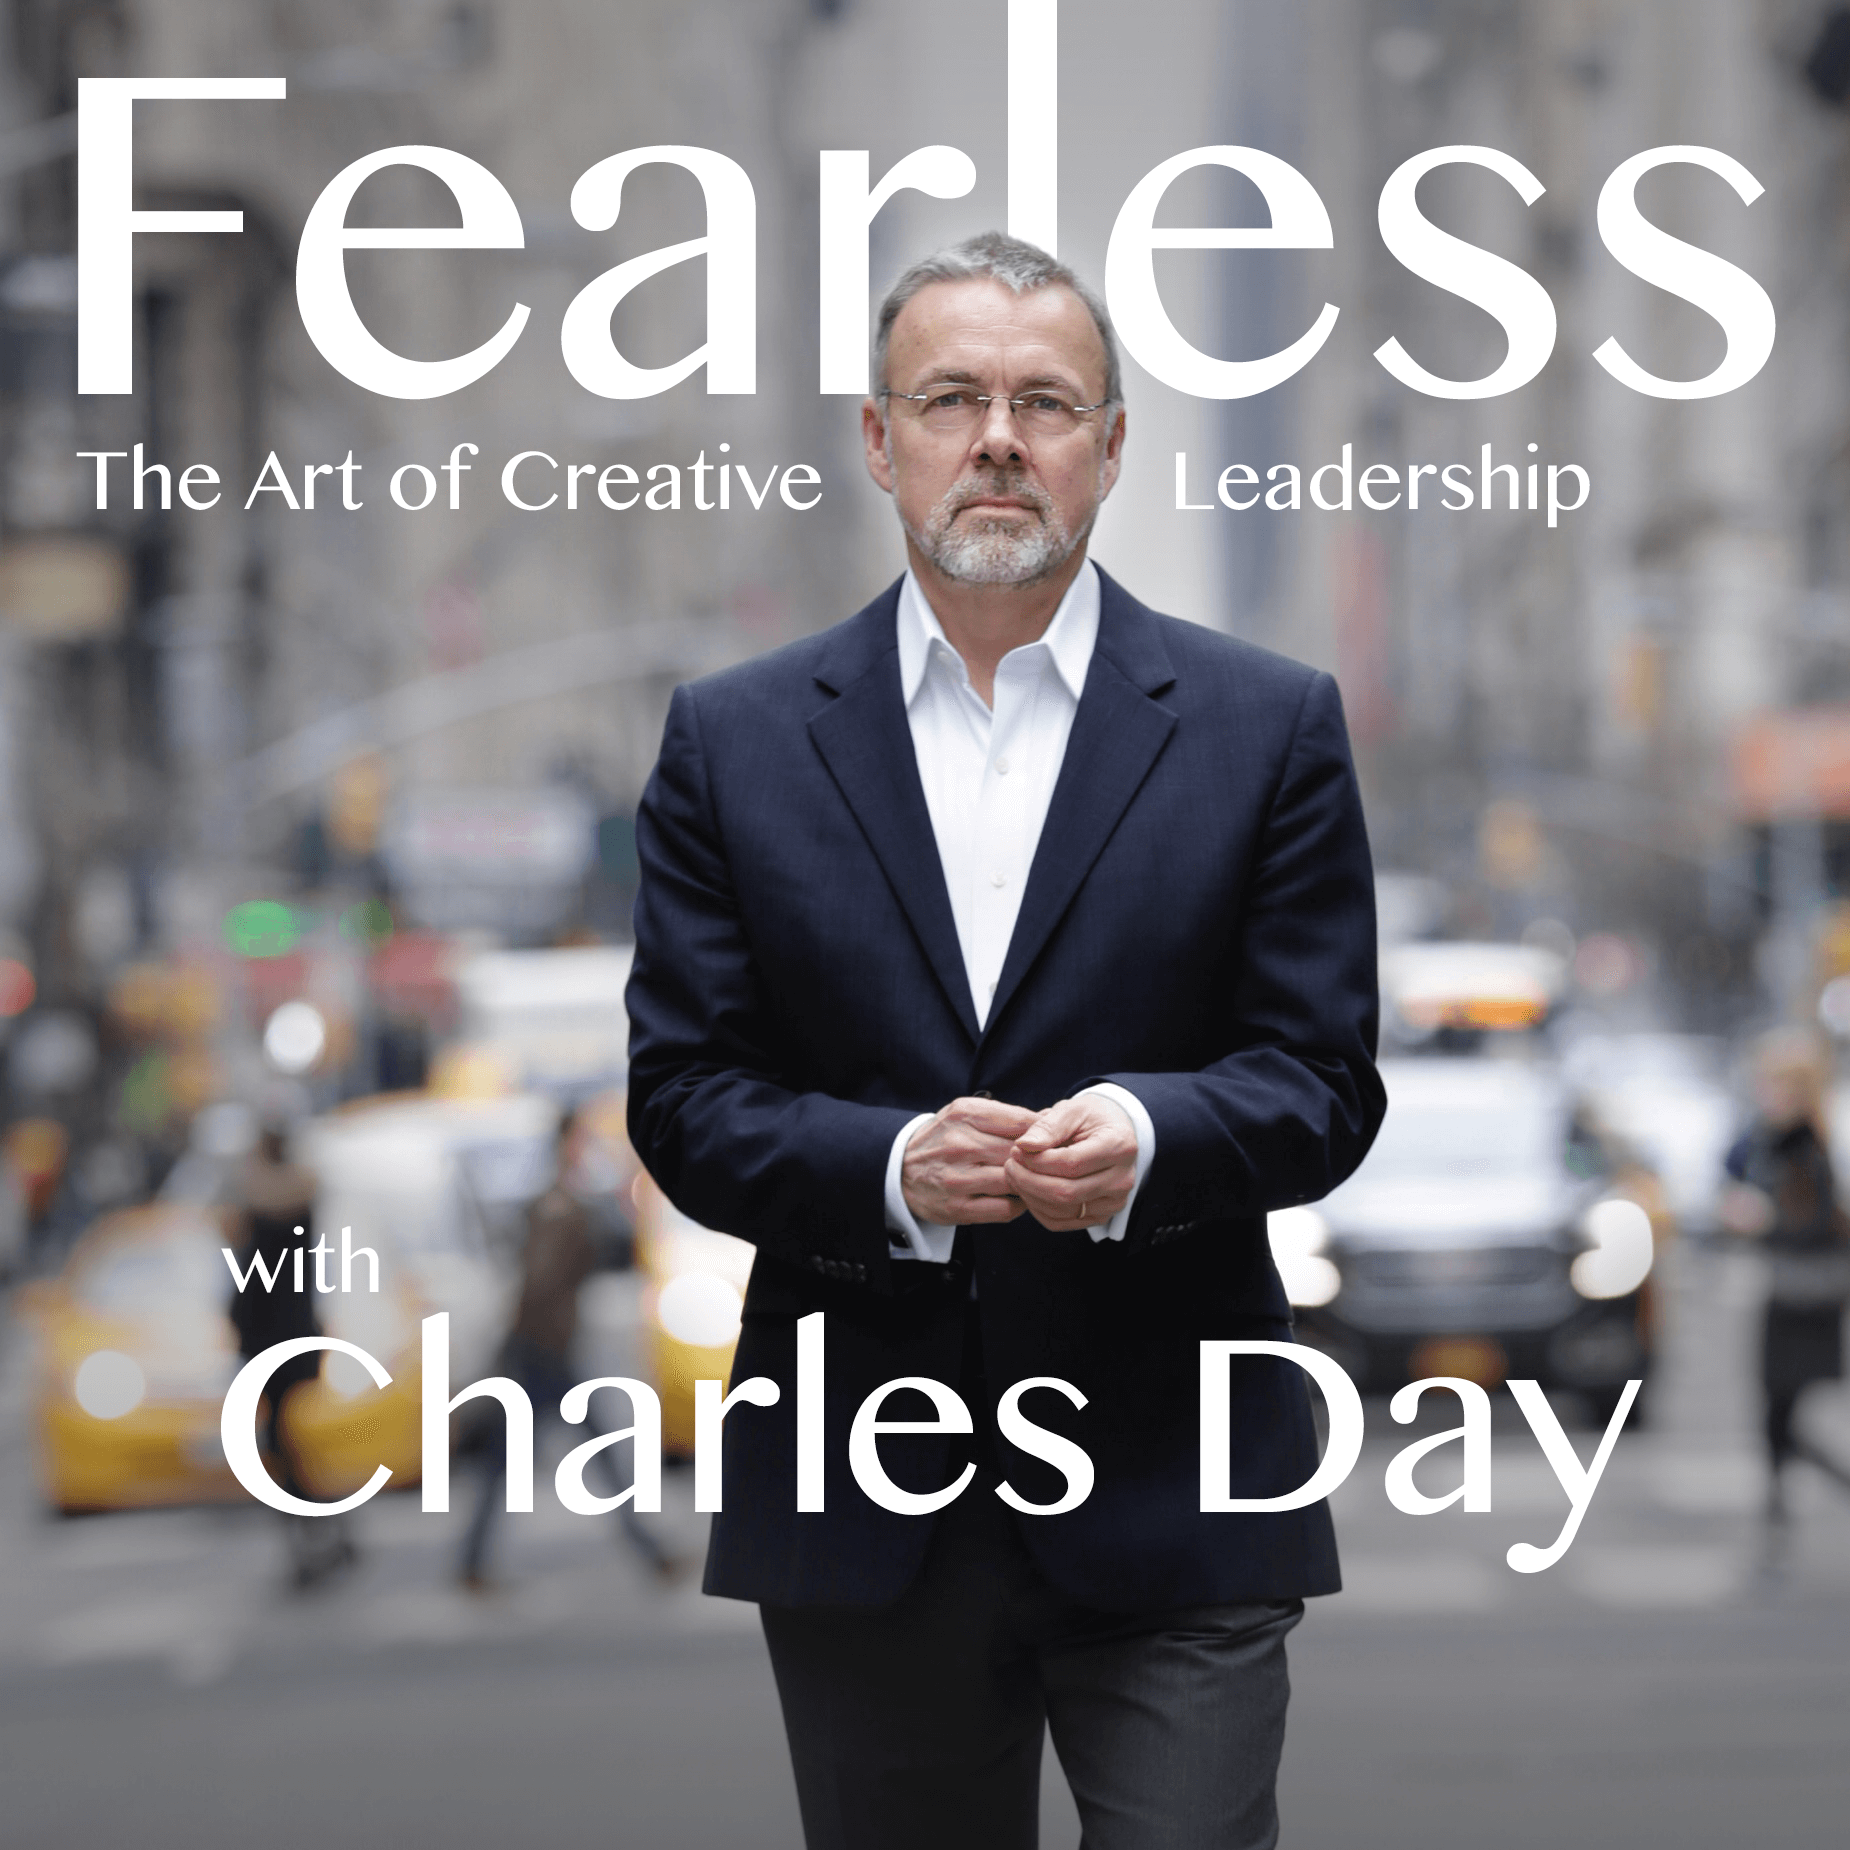 Fearless - The Art of Creative Leadership with Charles Day